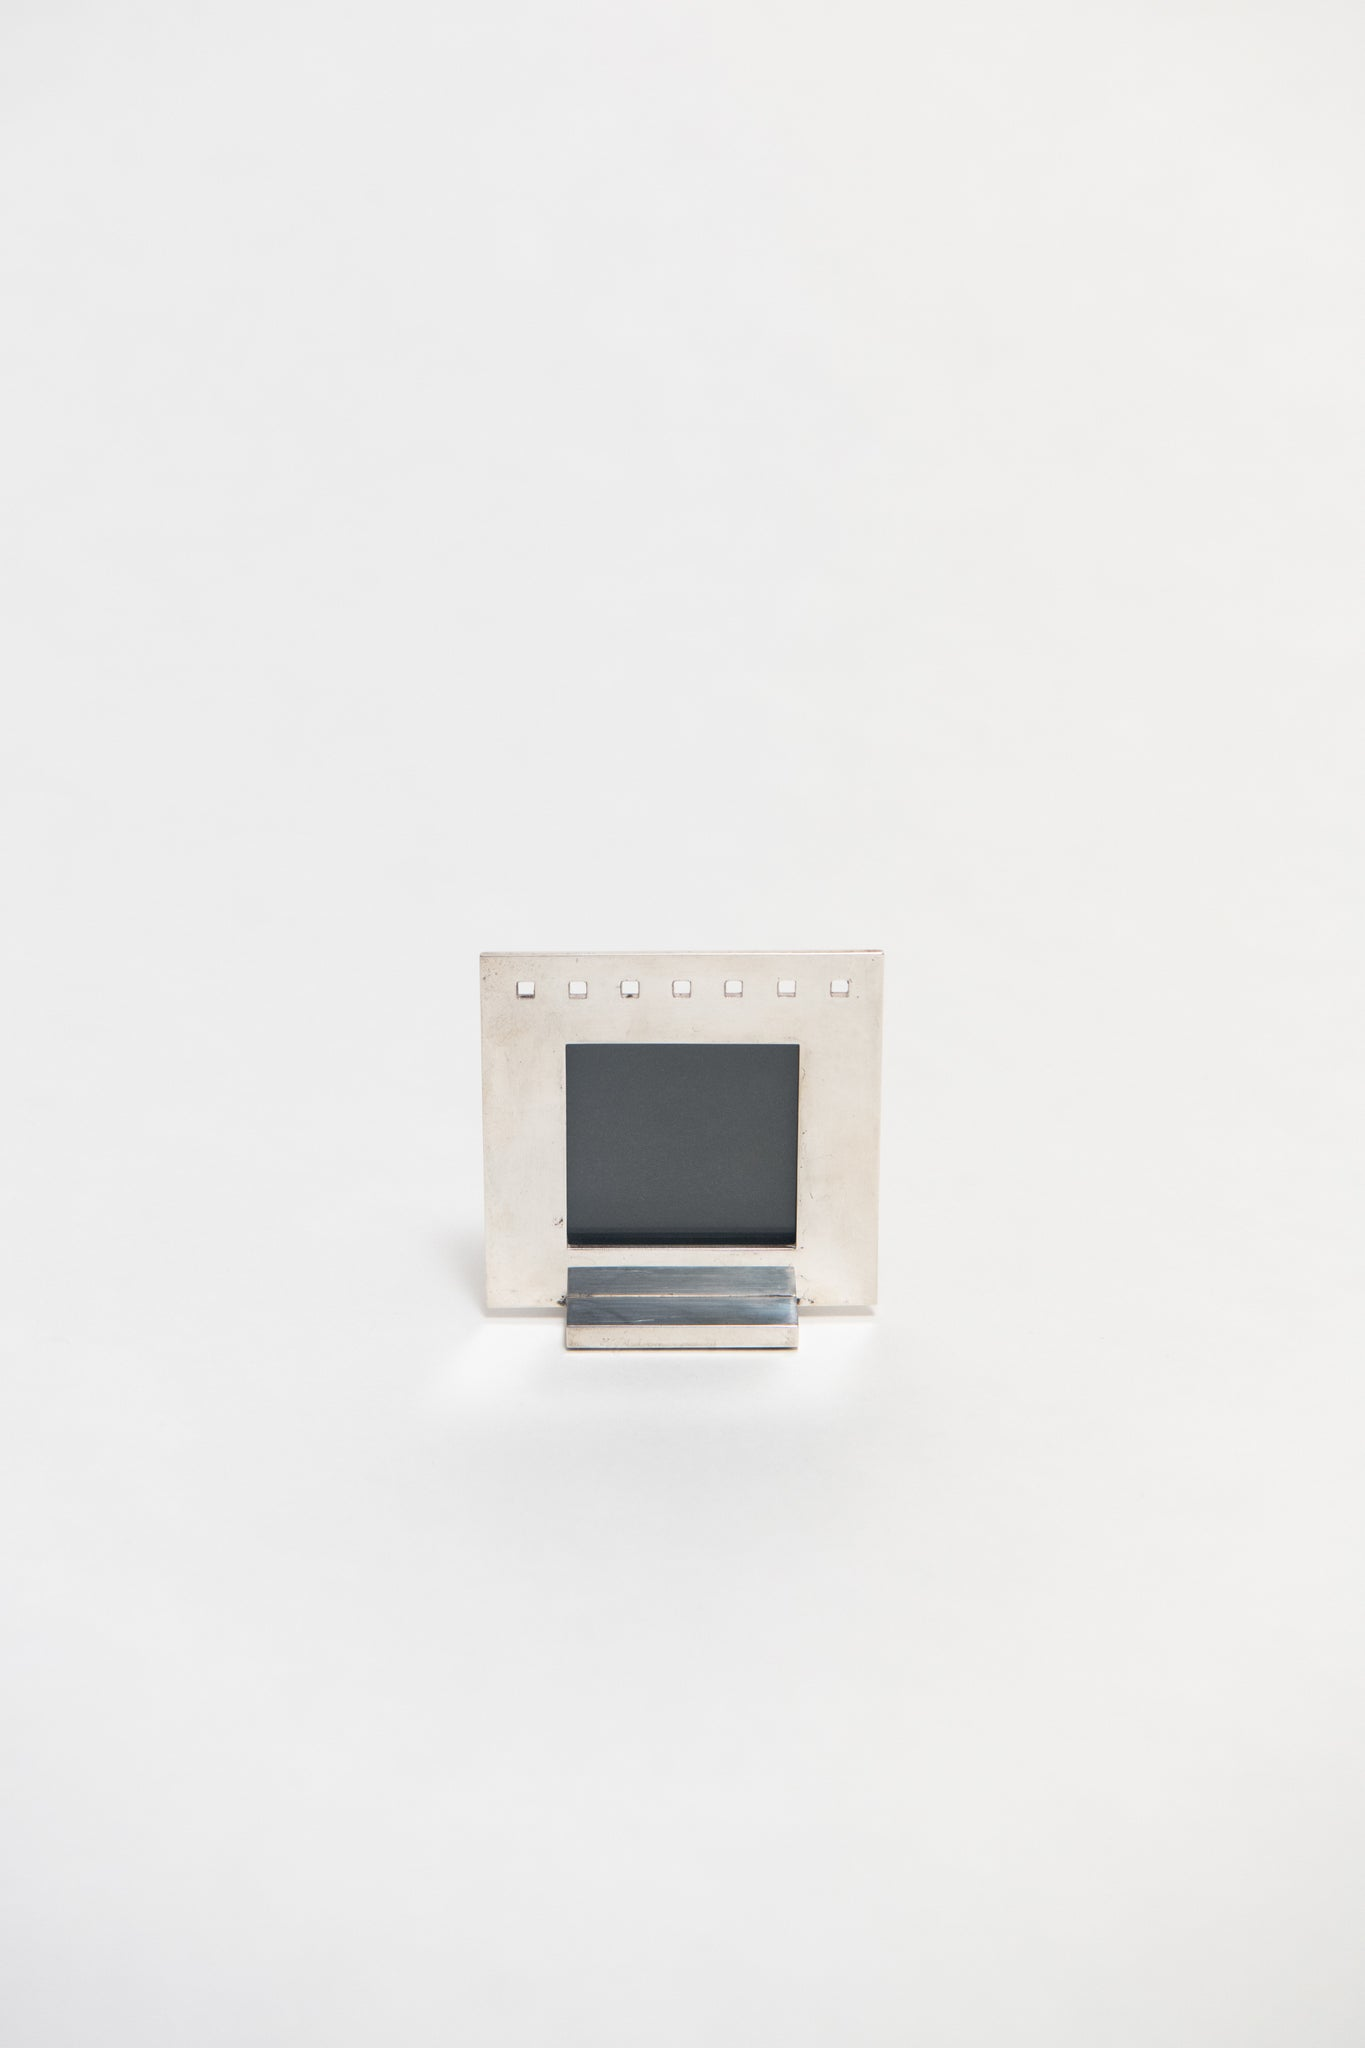 SWID POWELL, SILVER PHOTO FRAME, C, 1980